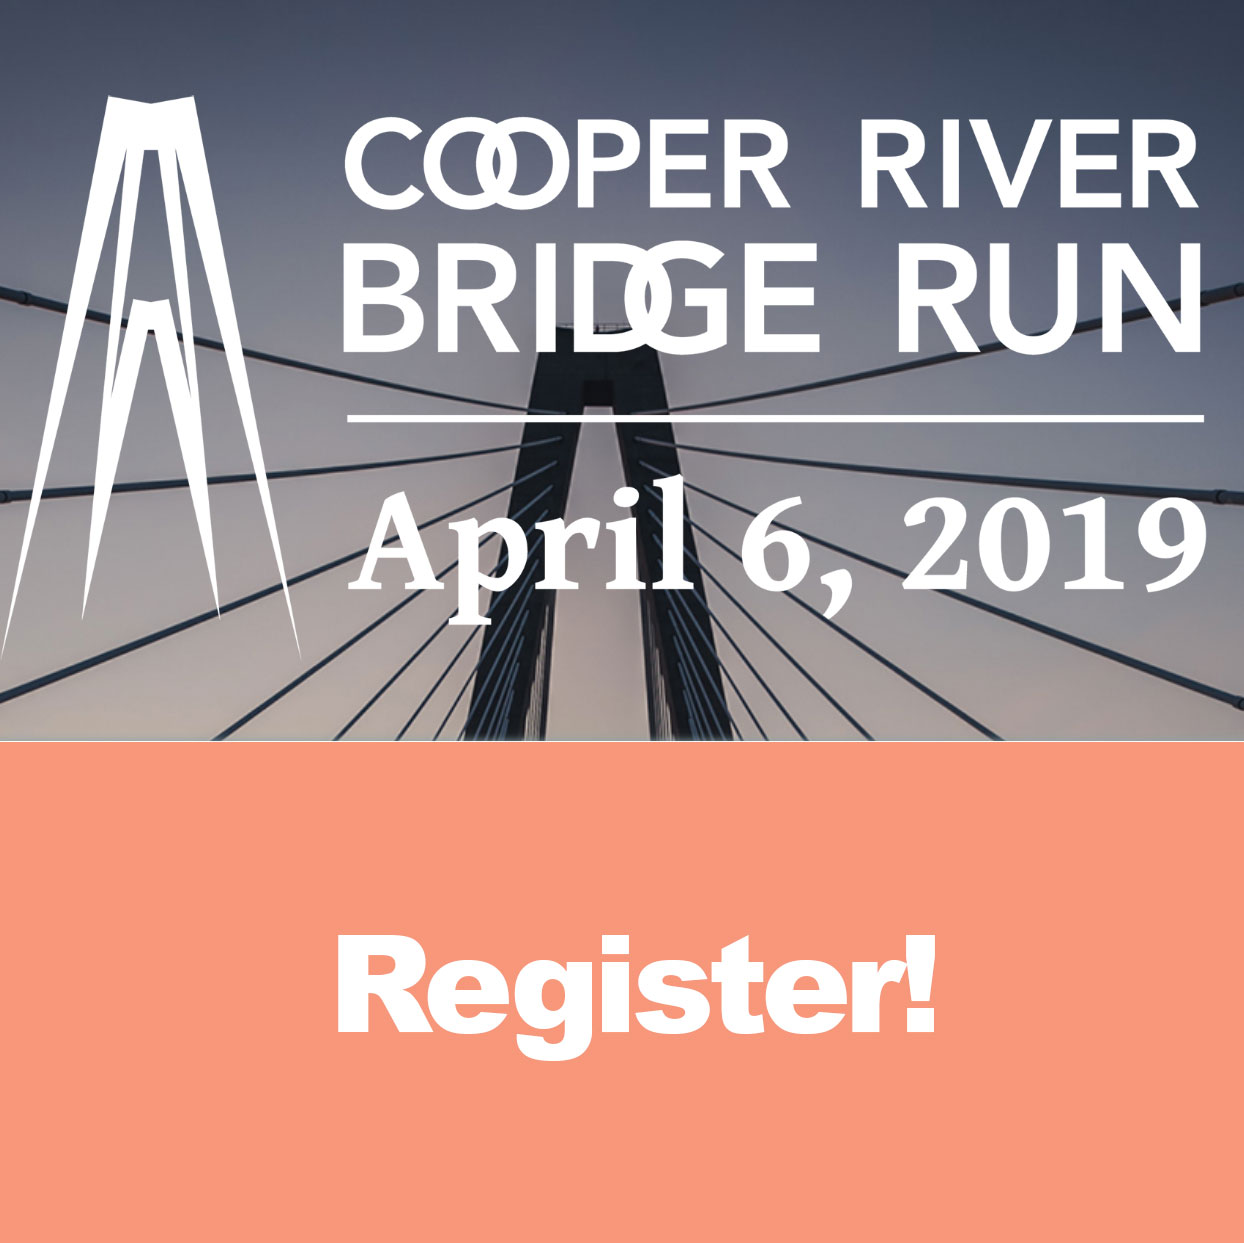 charleston-inside-out-cooper-river-bridge-run-2019.jpg